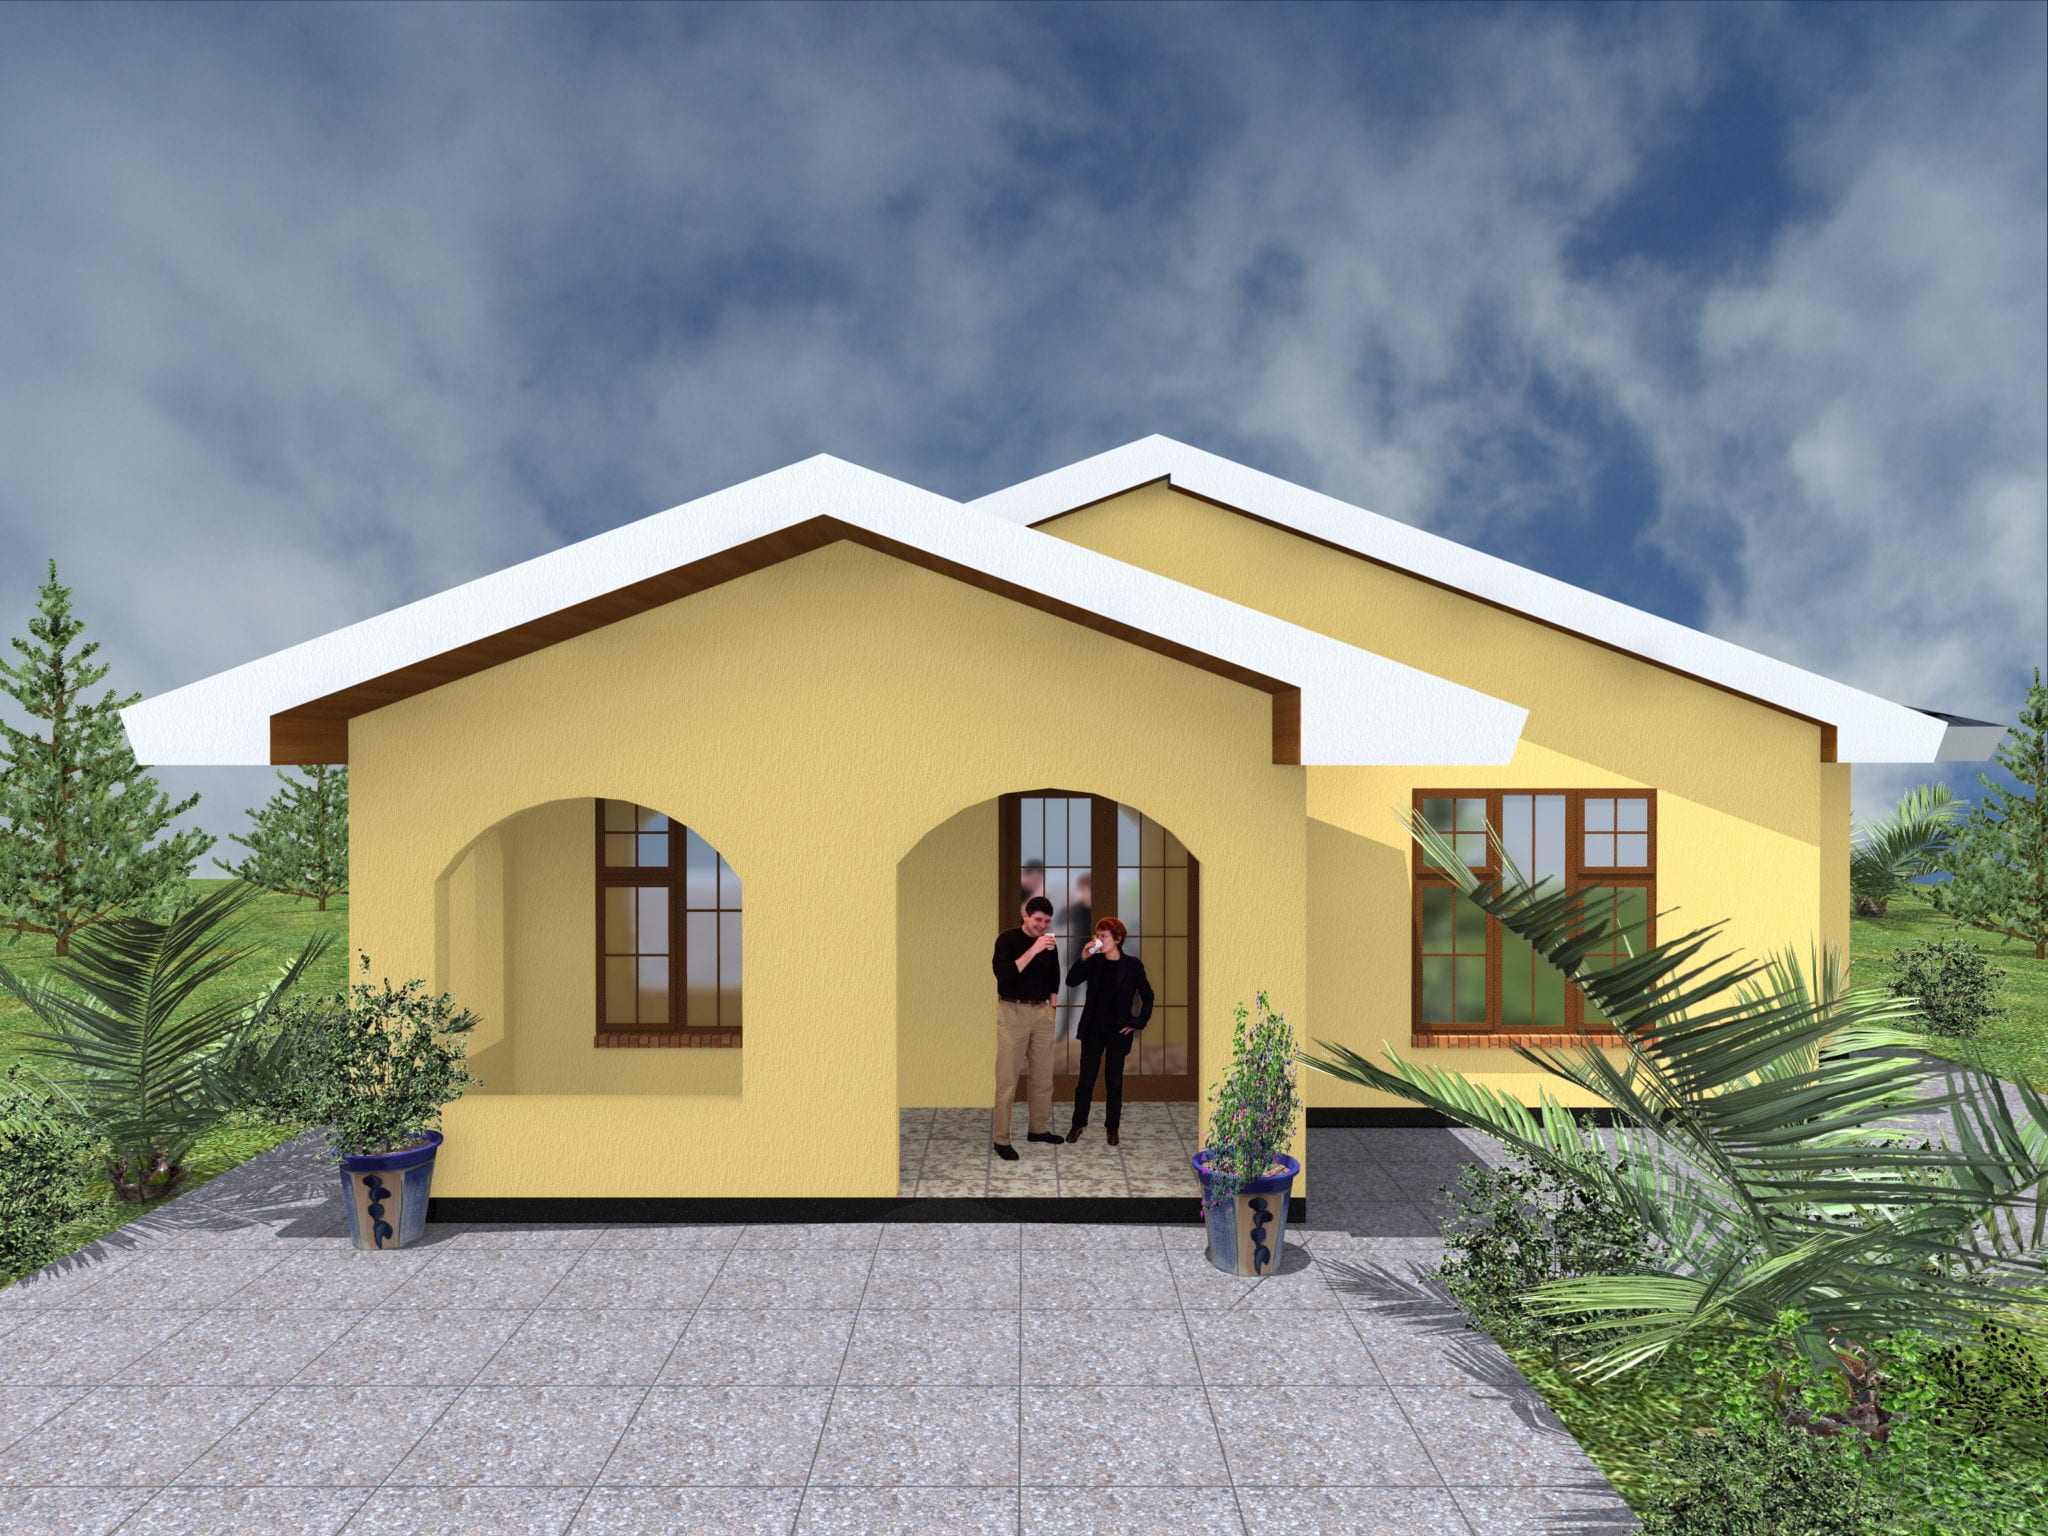 Simple three bedroom house plans in Kenya |HPD Consult